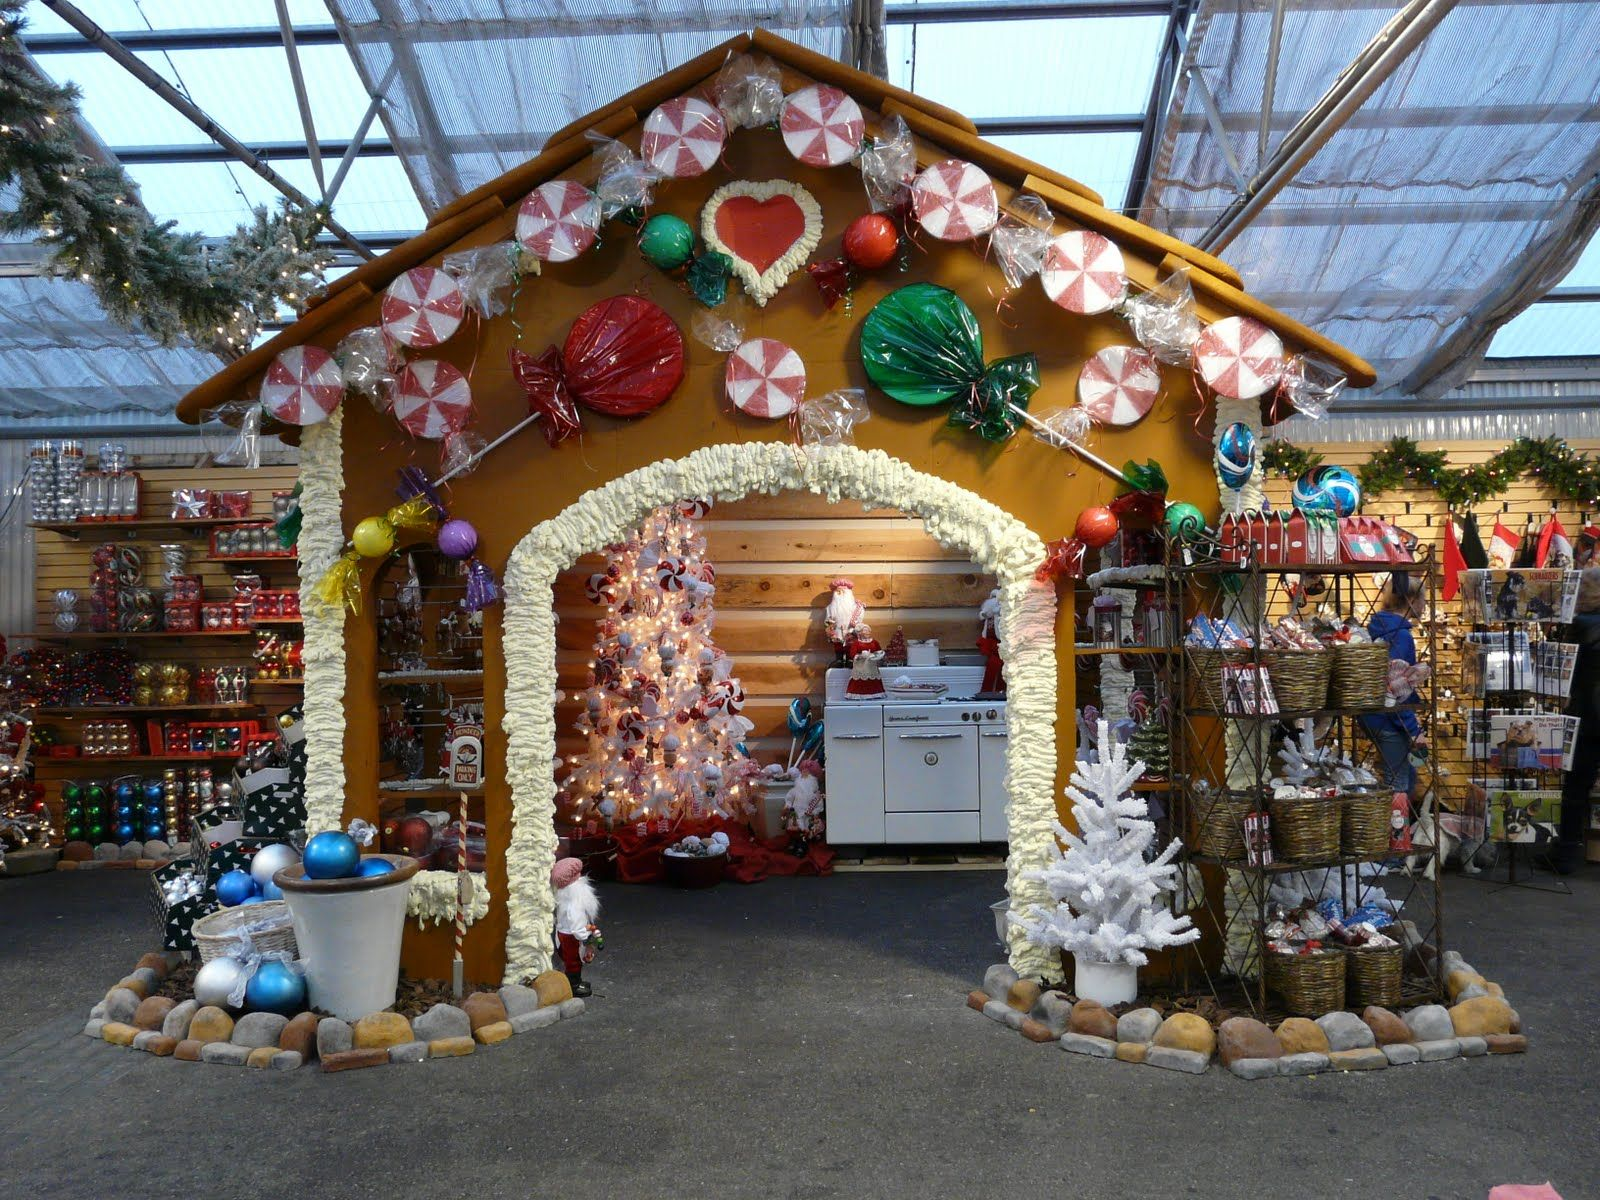 Beautiful Christmas Craft Booth Ideas Part - 4: Wow What A Great Christmas Craft Show Booth Idea! You Could Do This For A Craft  Show Booth, Thick Cardboard For The Gingerbread, Spackle For The Icing.